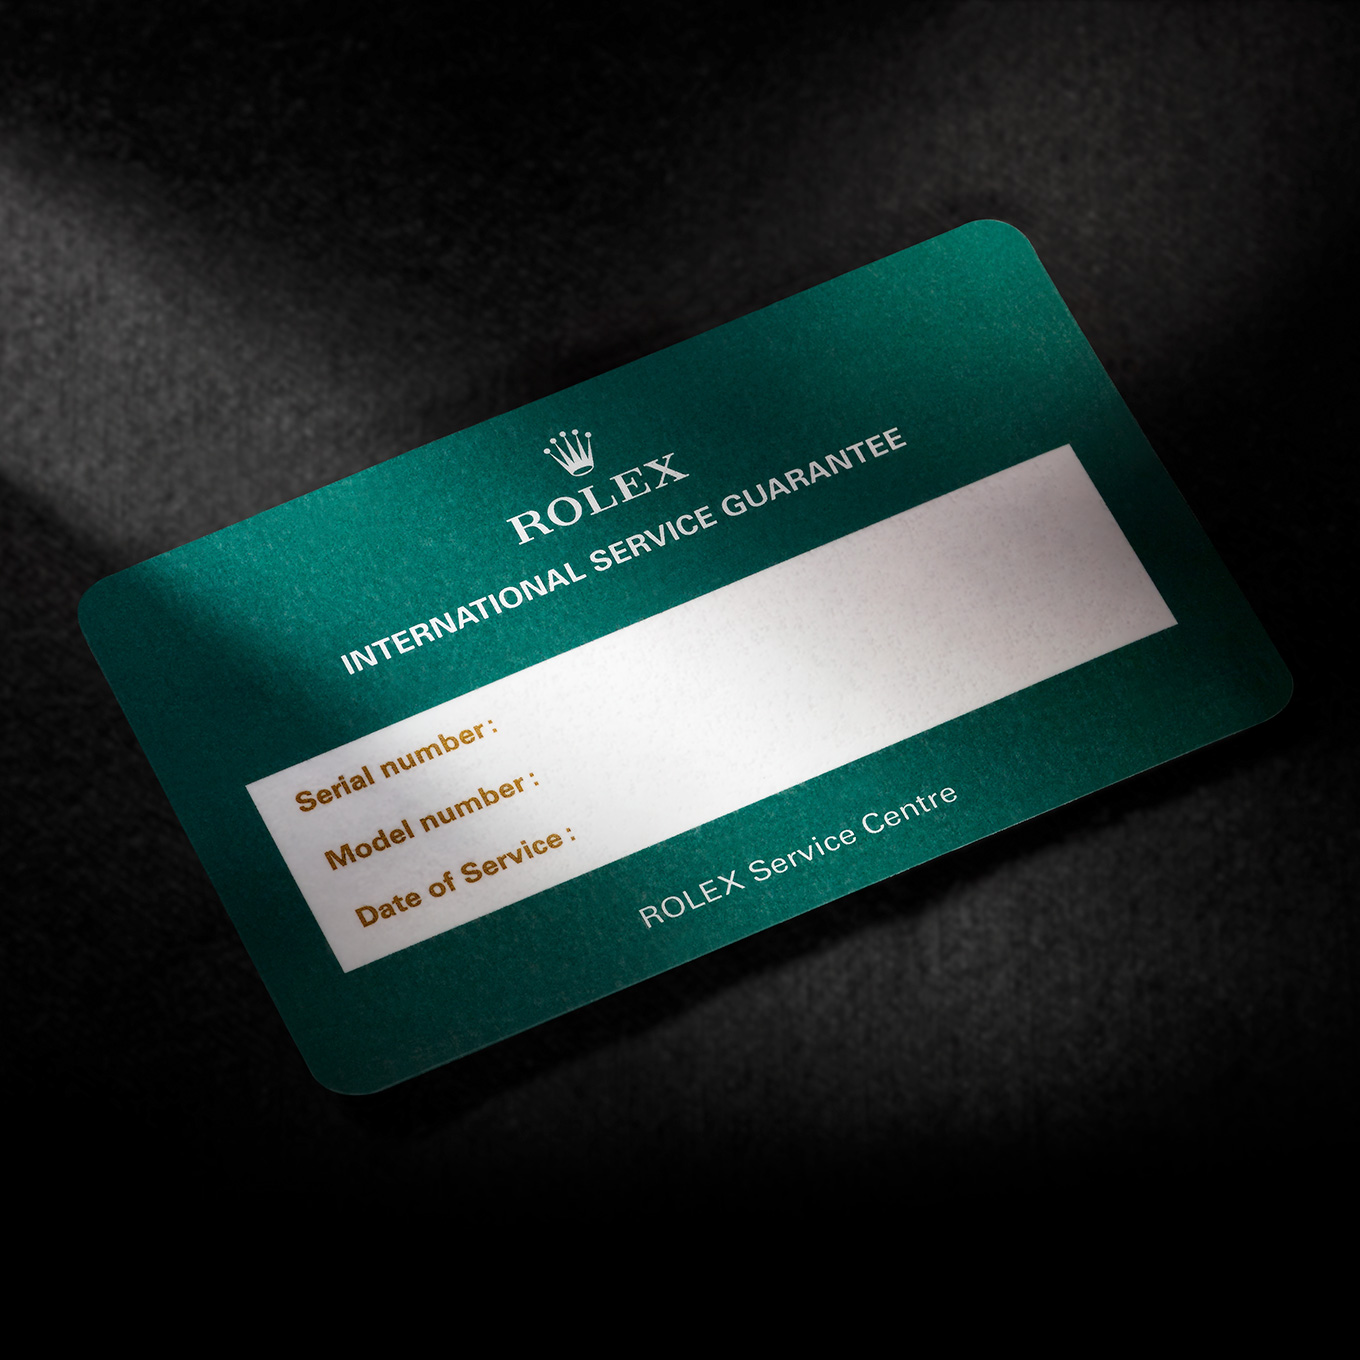 servicing-your-rolex-two-year-service-guarantee